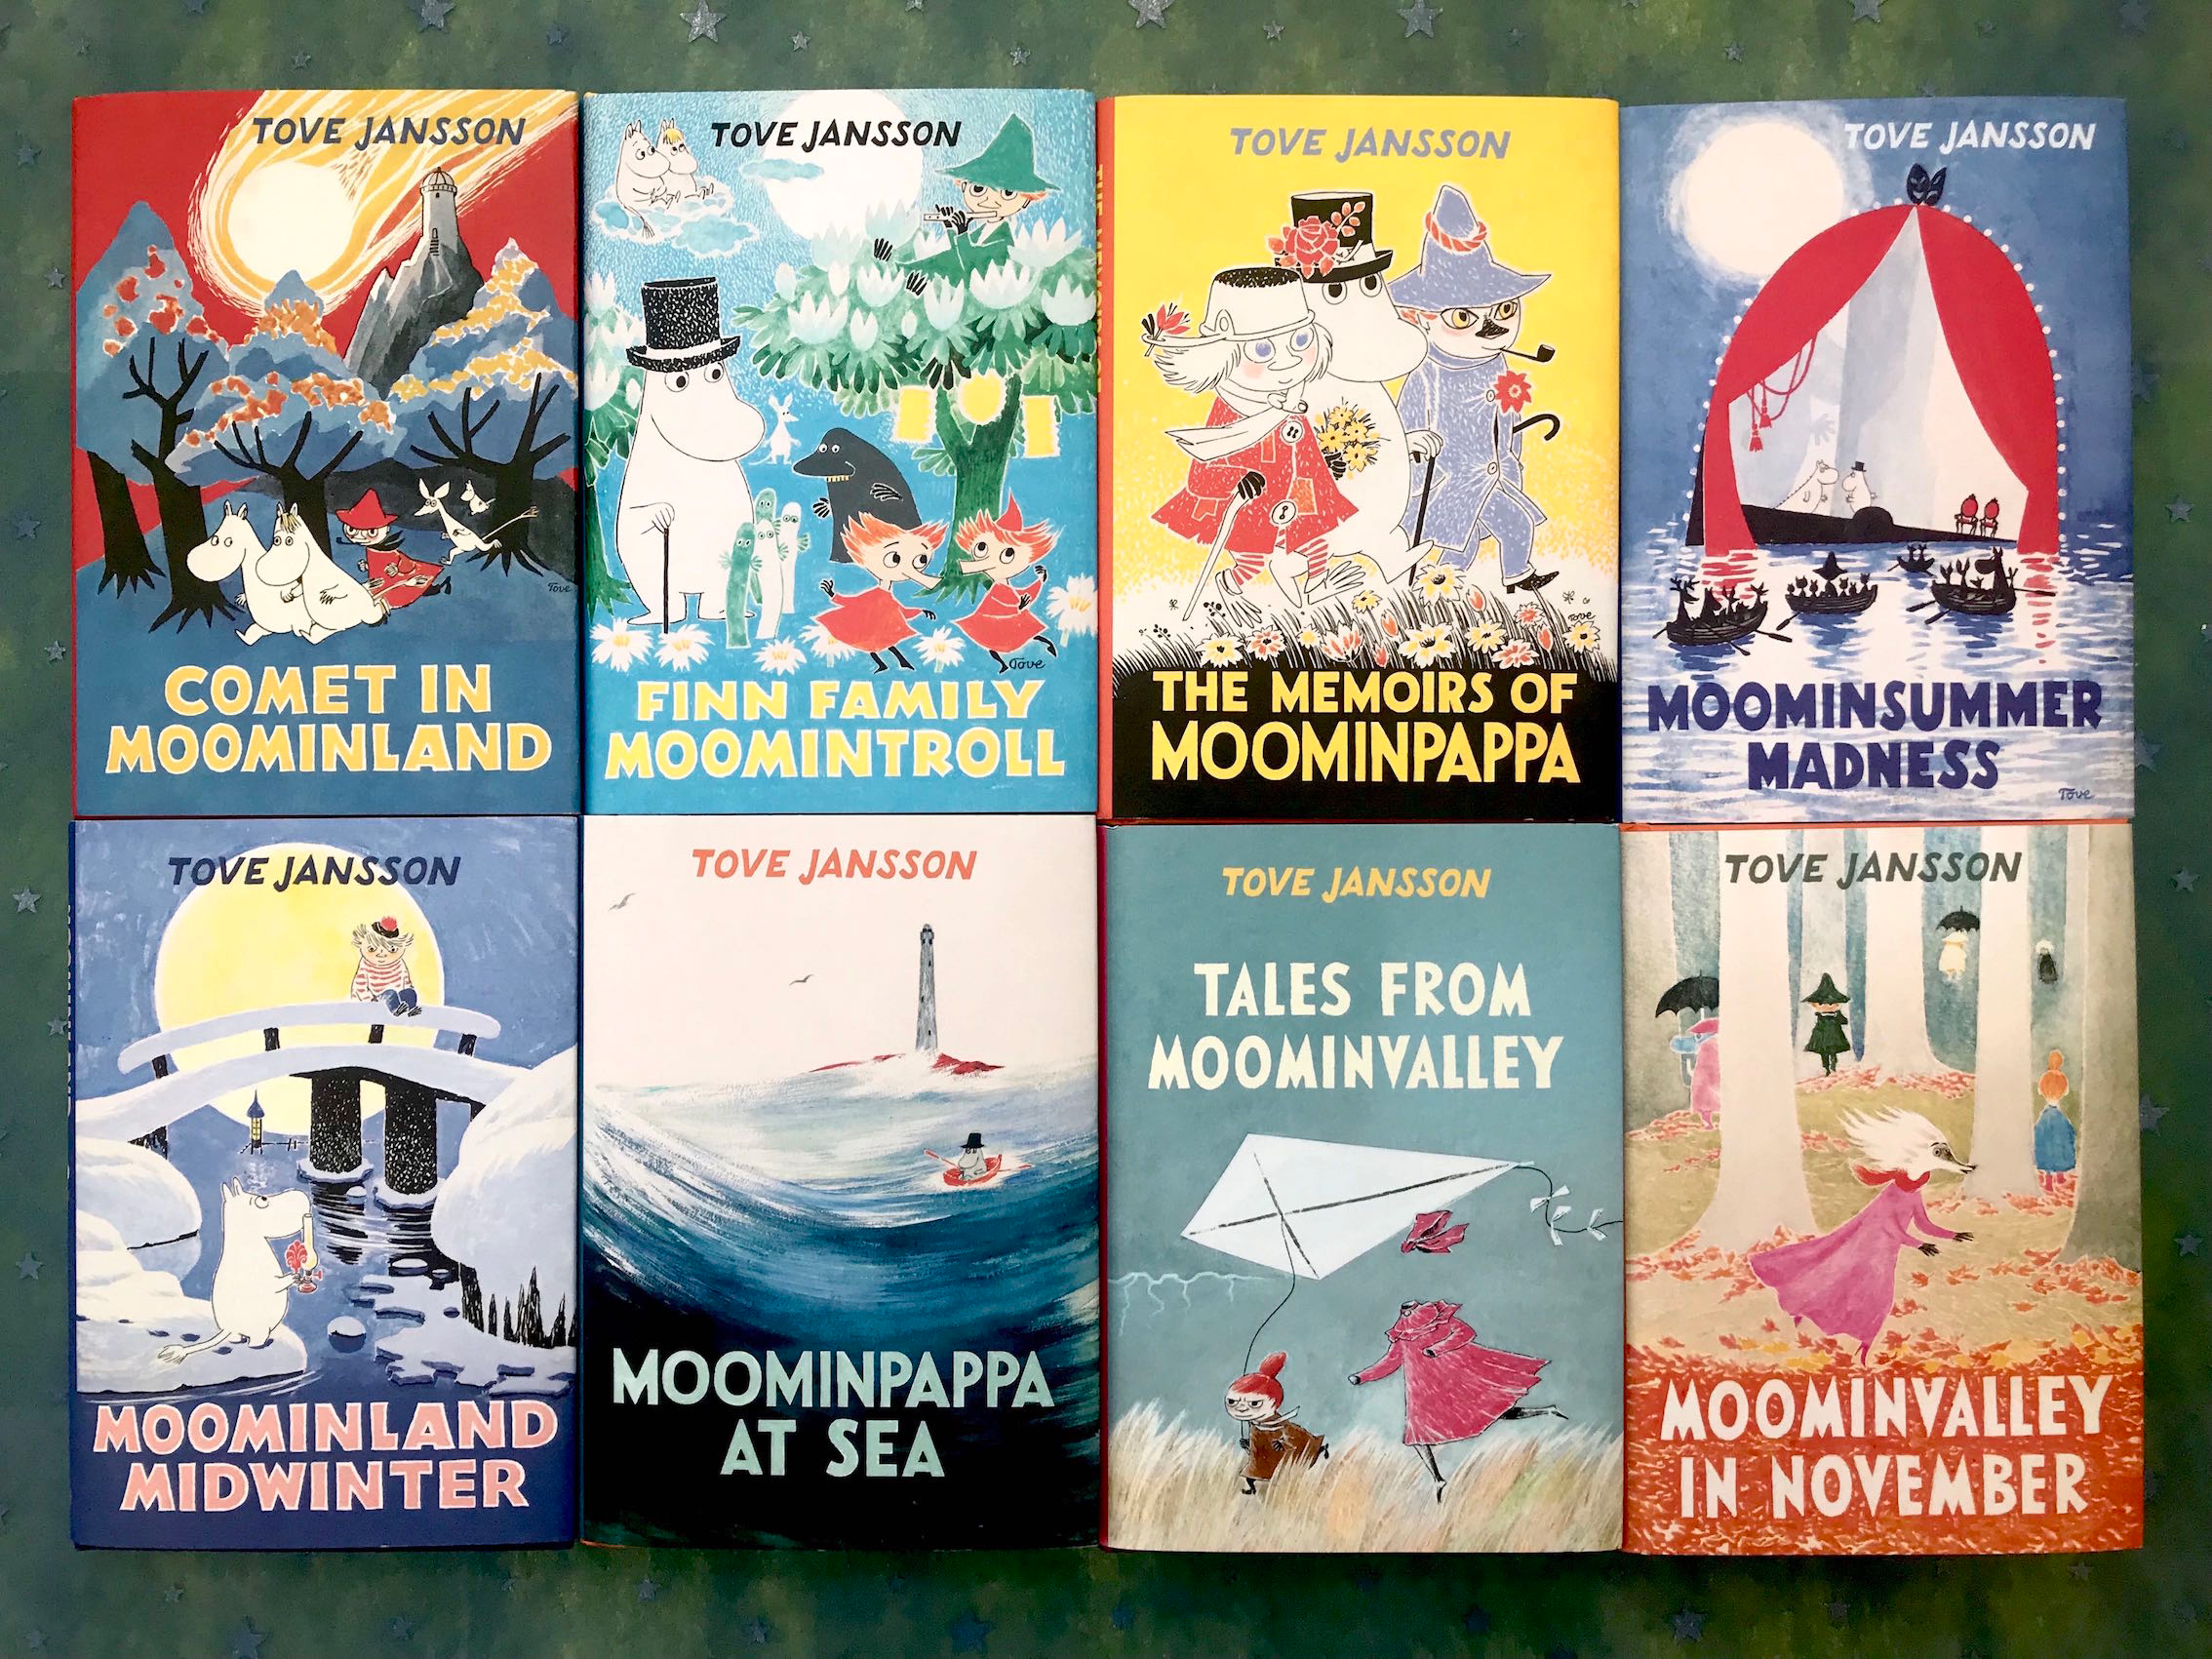 Tove-Jansson-Moomin-Books-Collection-5.jpg